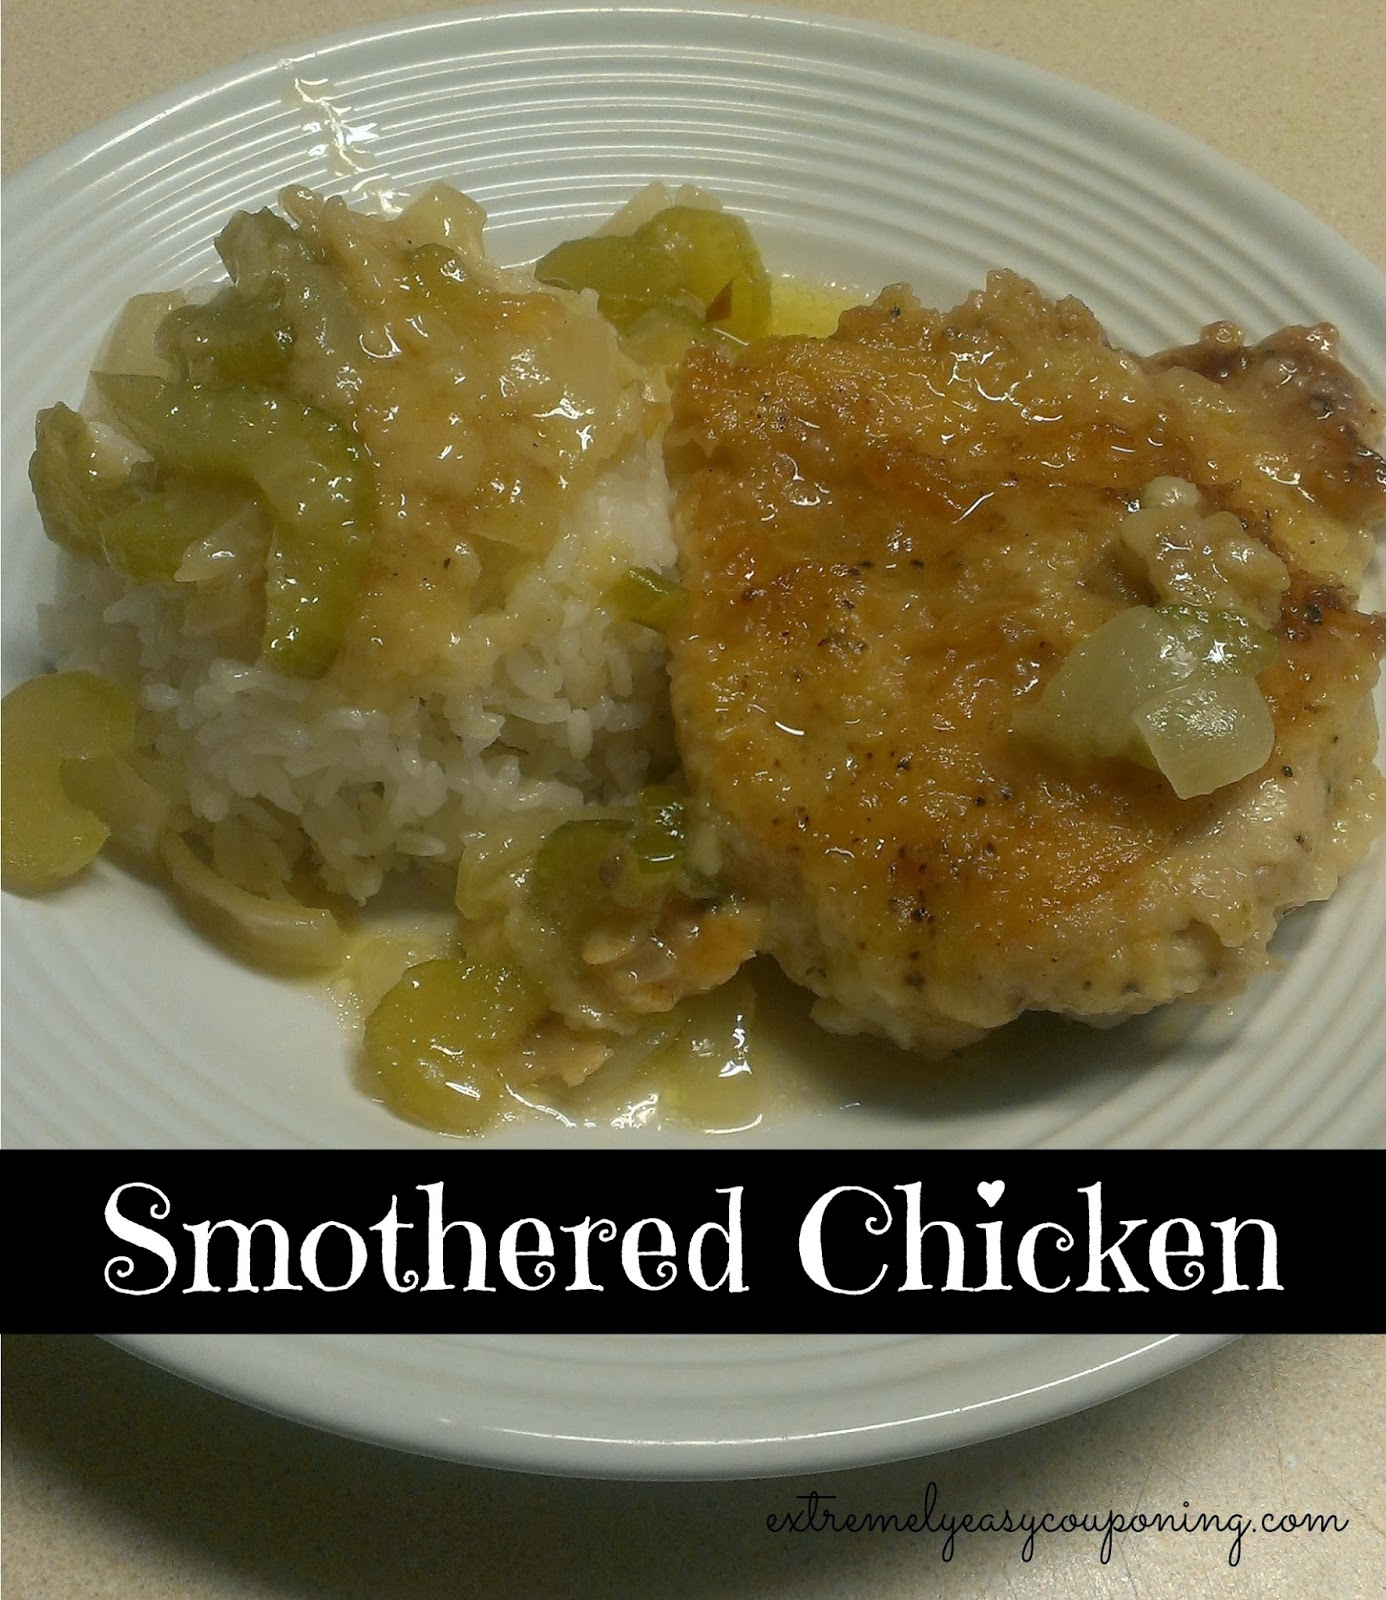 Extremely Easy Couponing: Smothered Chicken Recipe